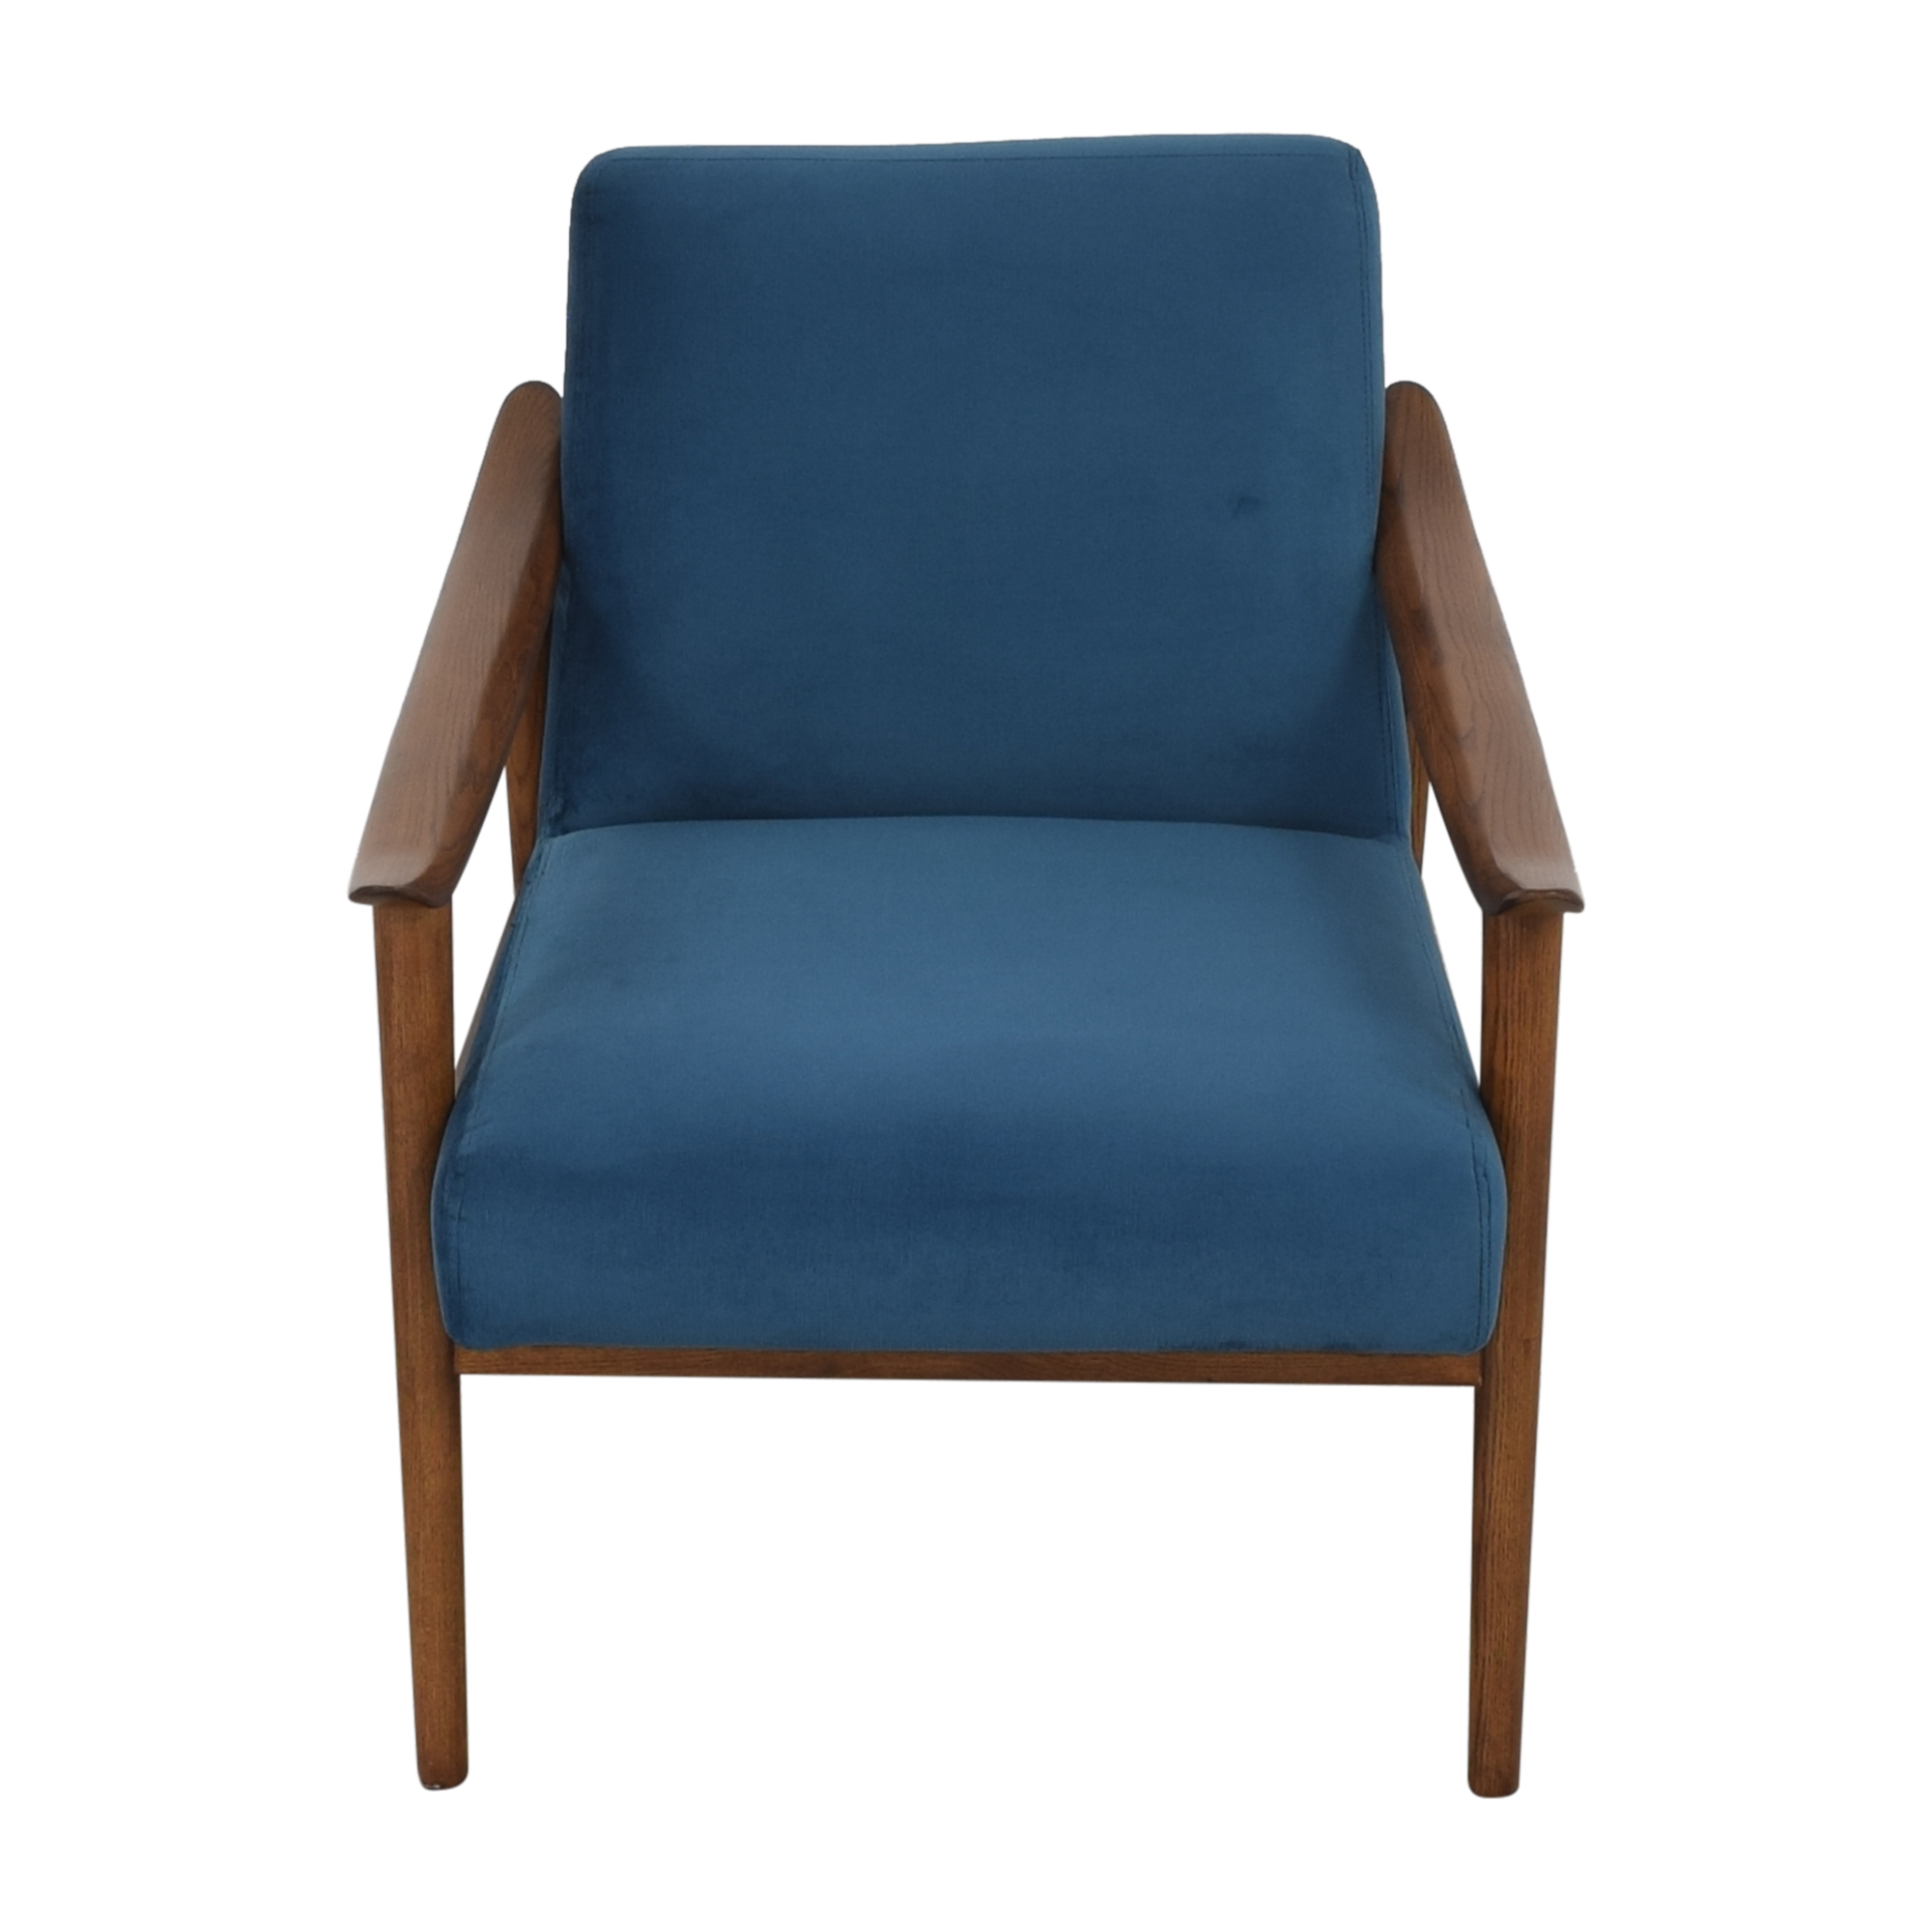 buy West Elm West Elm Mid-Century Show Wood Upholstered Chair online